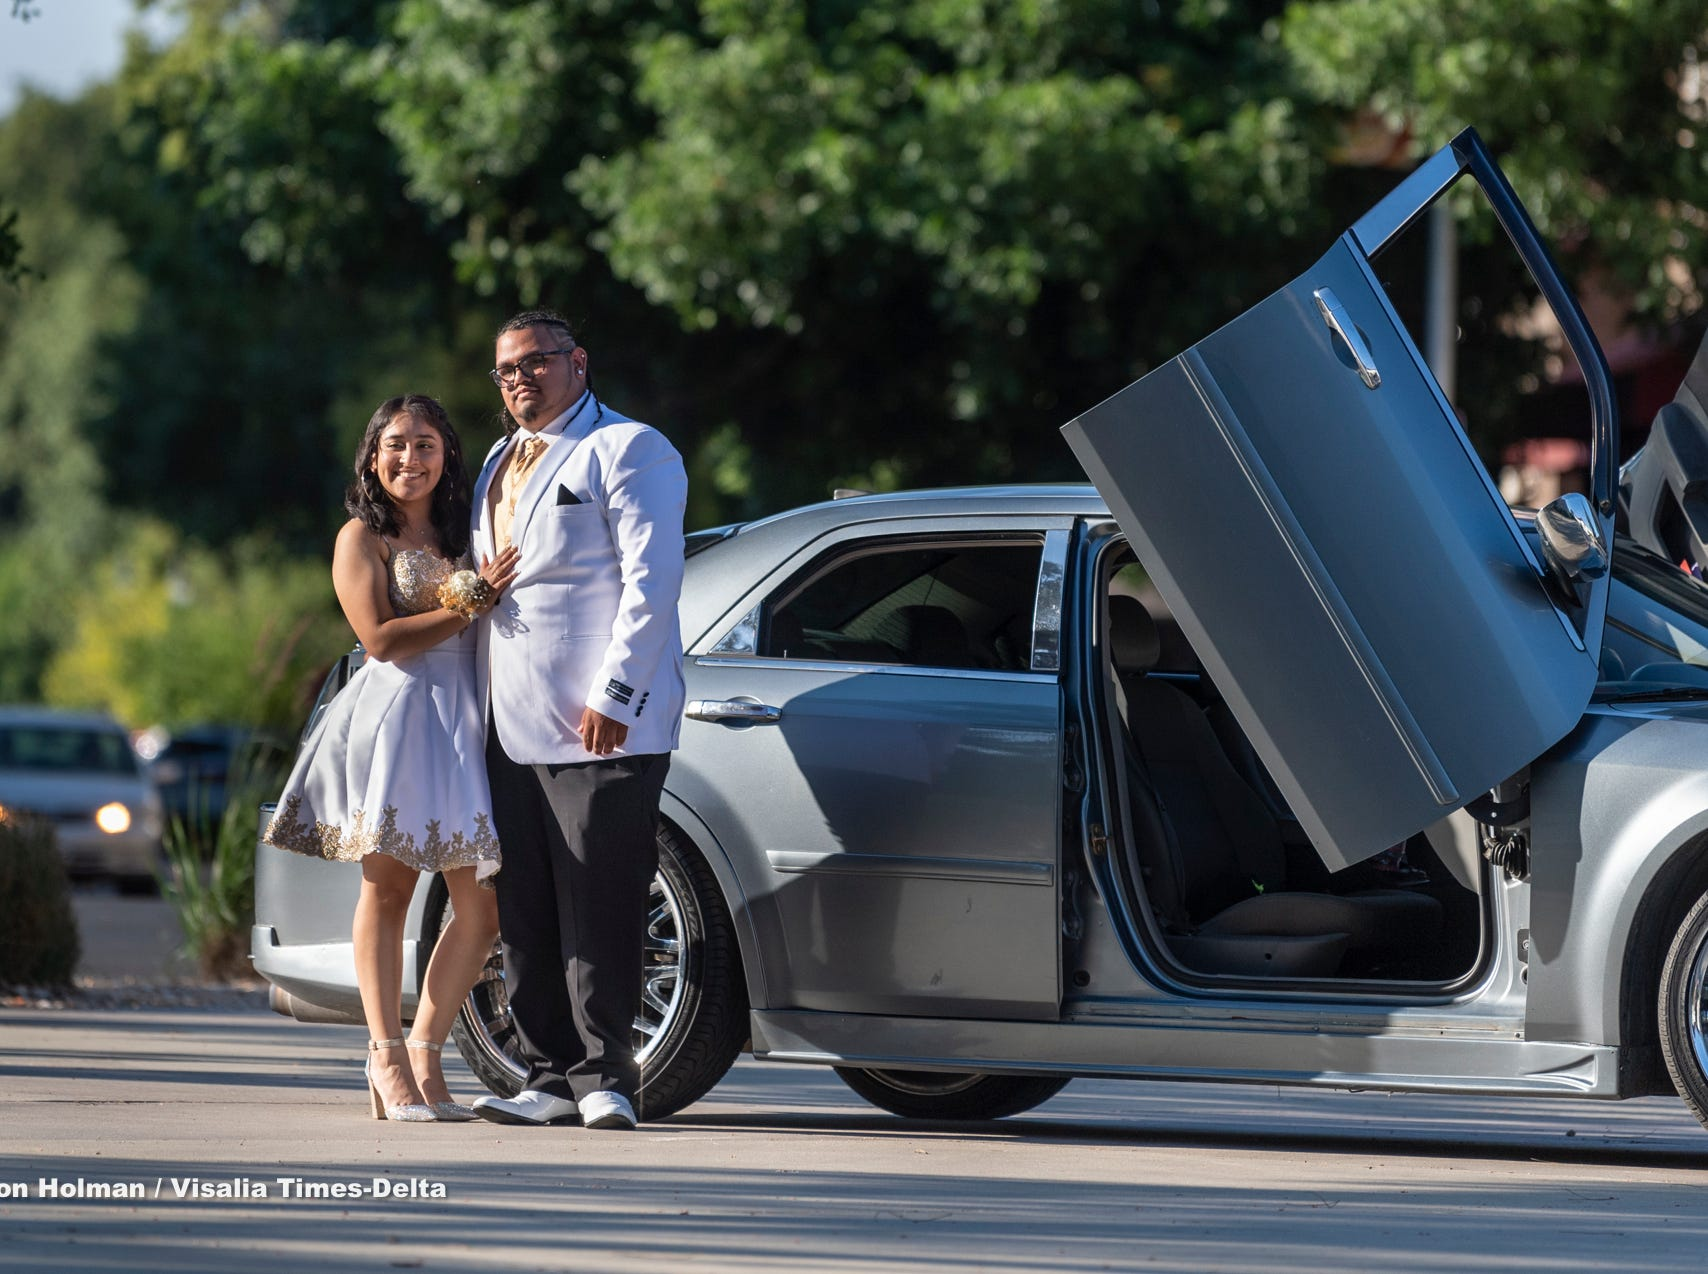 El Diamante student Isaac Magallon, right, and his date Ofie Zuniga step out from a customized Chrysler 300 for Visalia Unified School District's High School prom on Saturday, May 11, 2019.